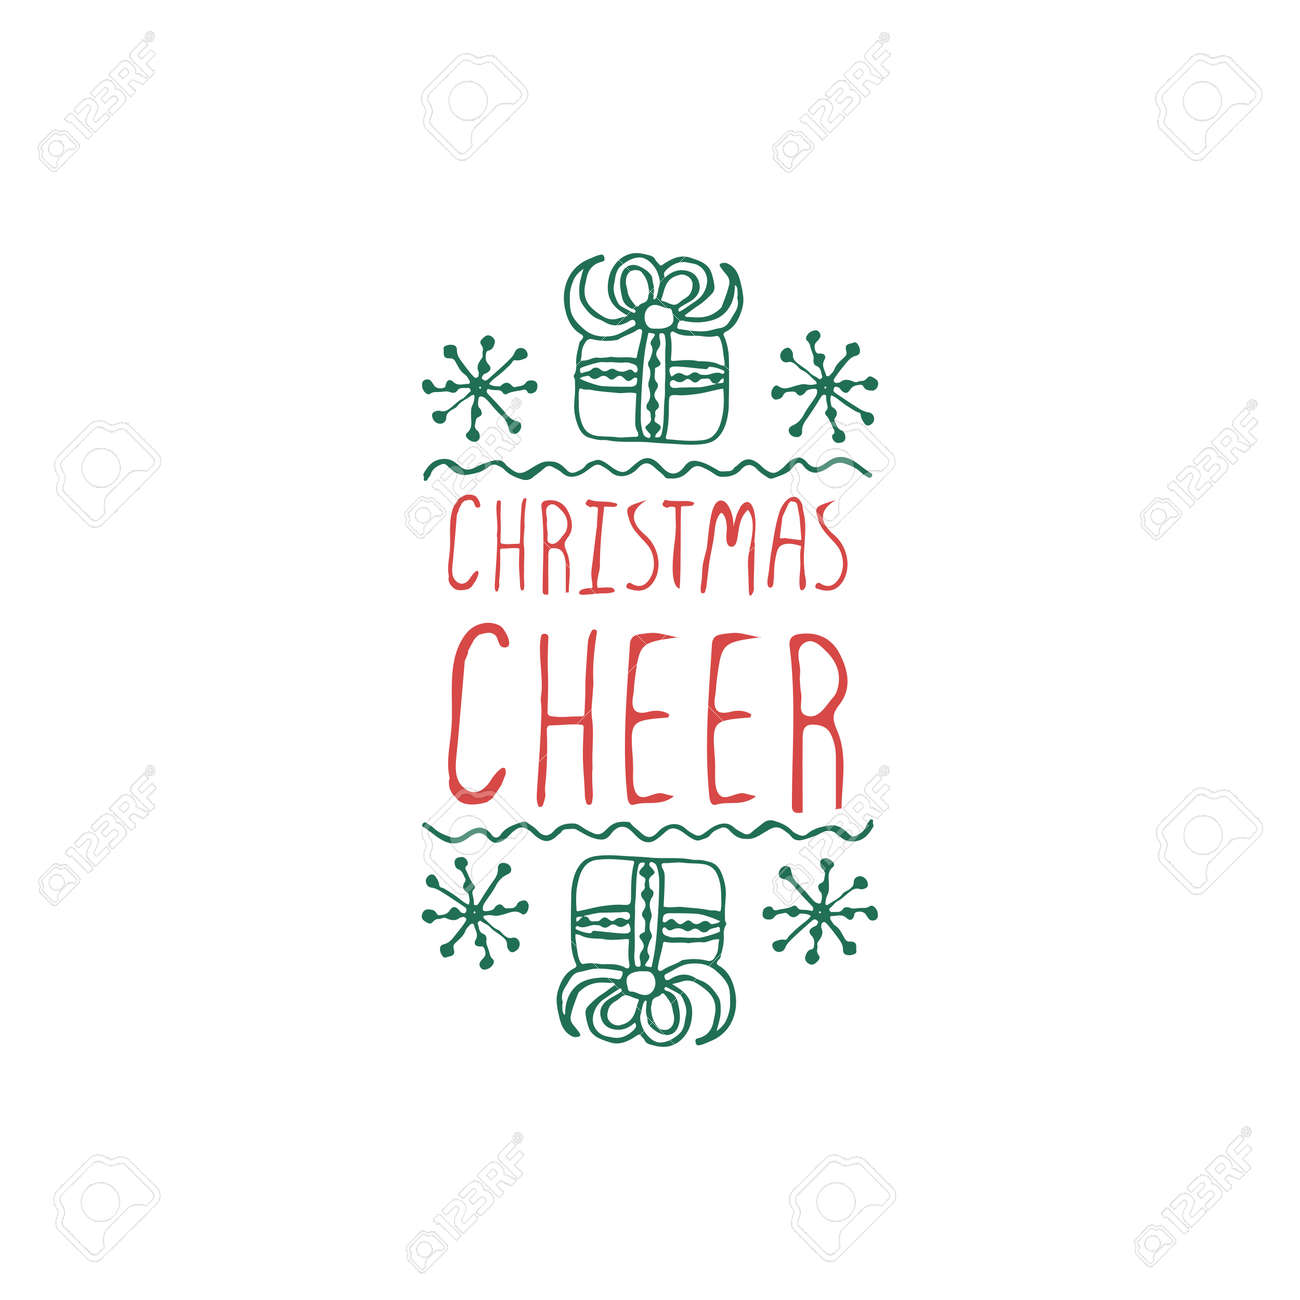 Christmas Label With Text On White Background. Christmas Cheer ...